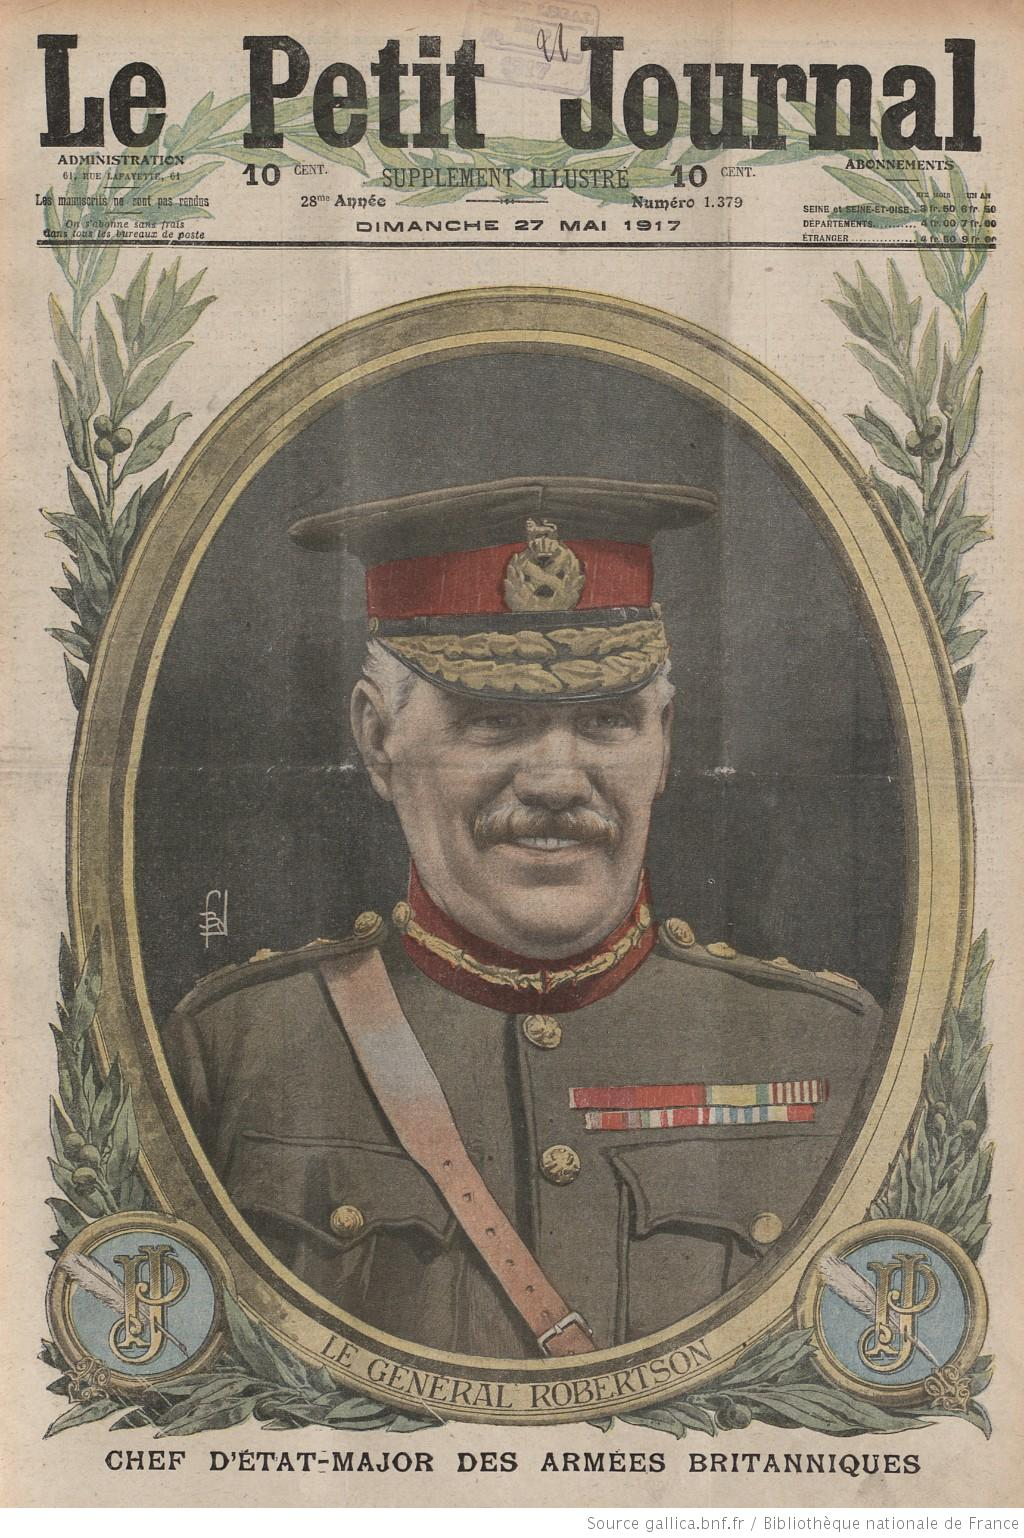 LPJ Illustre 1917-05-27 A.jpg